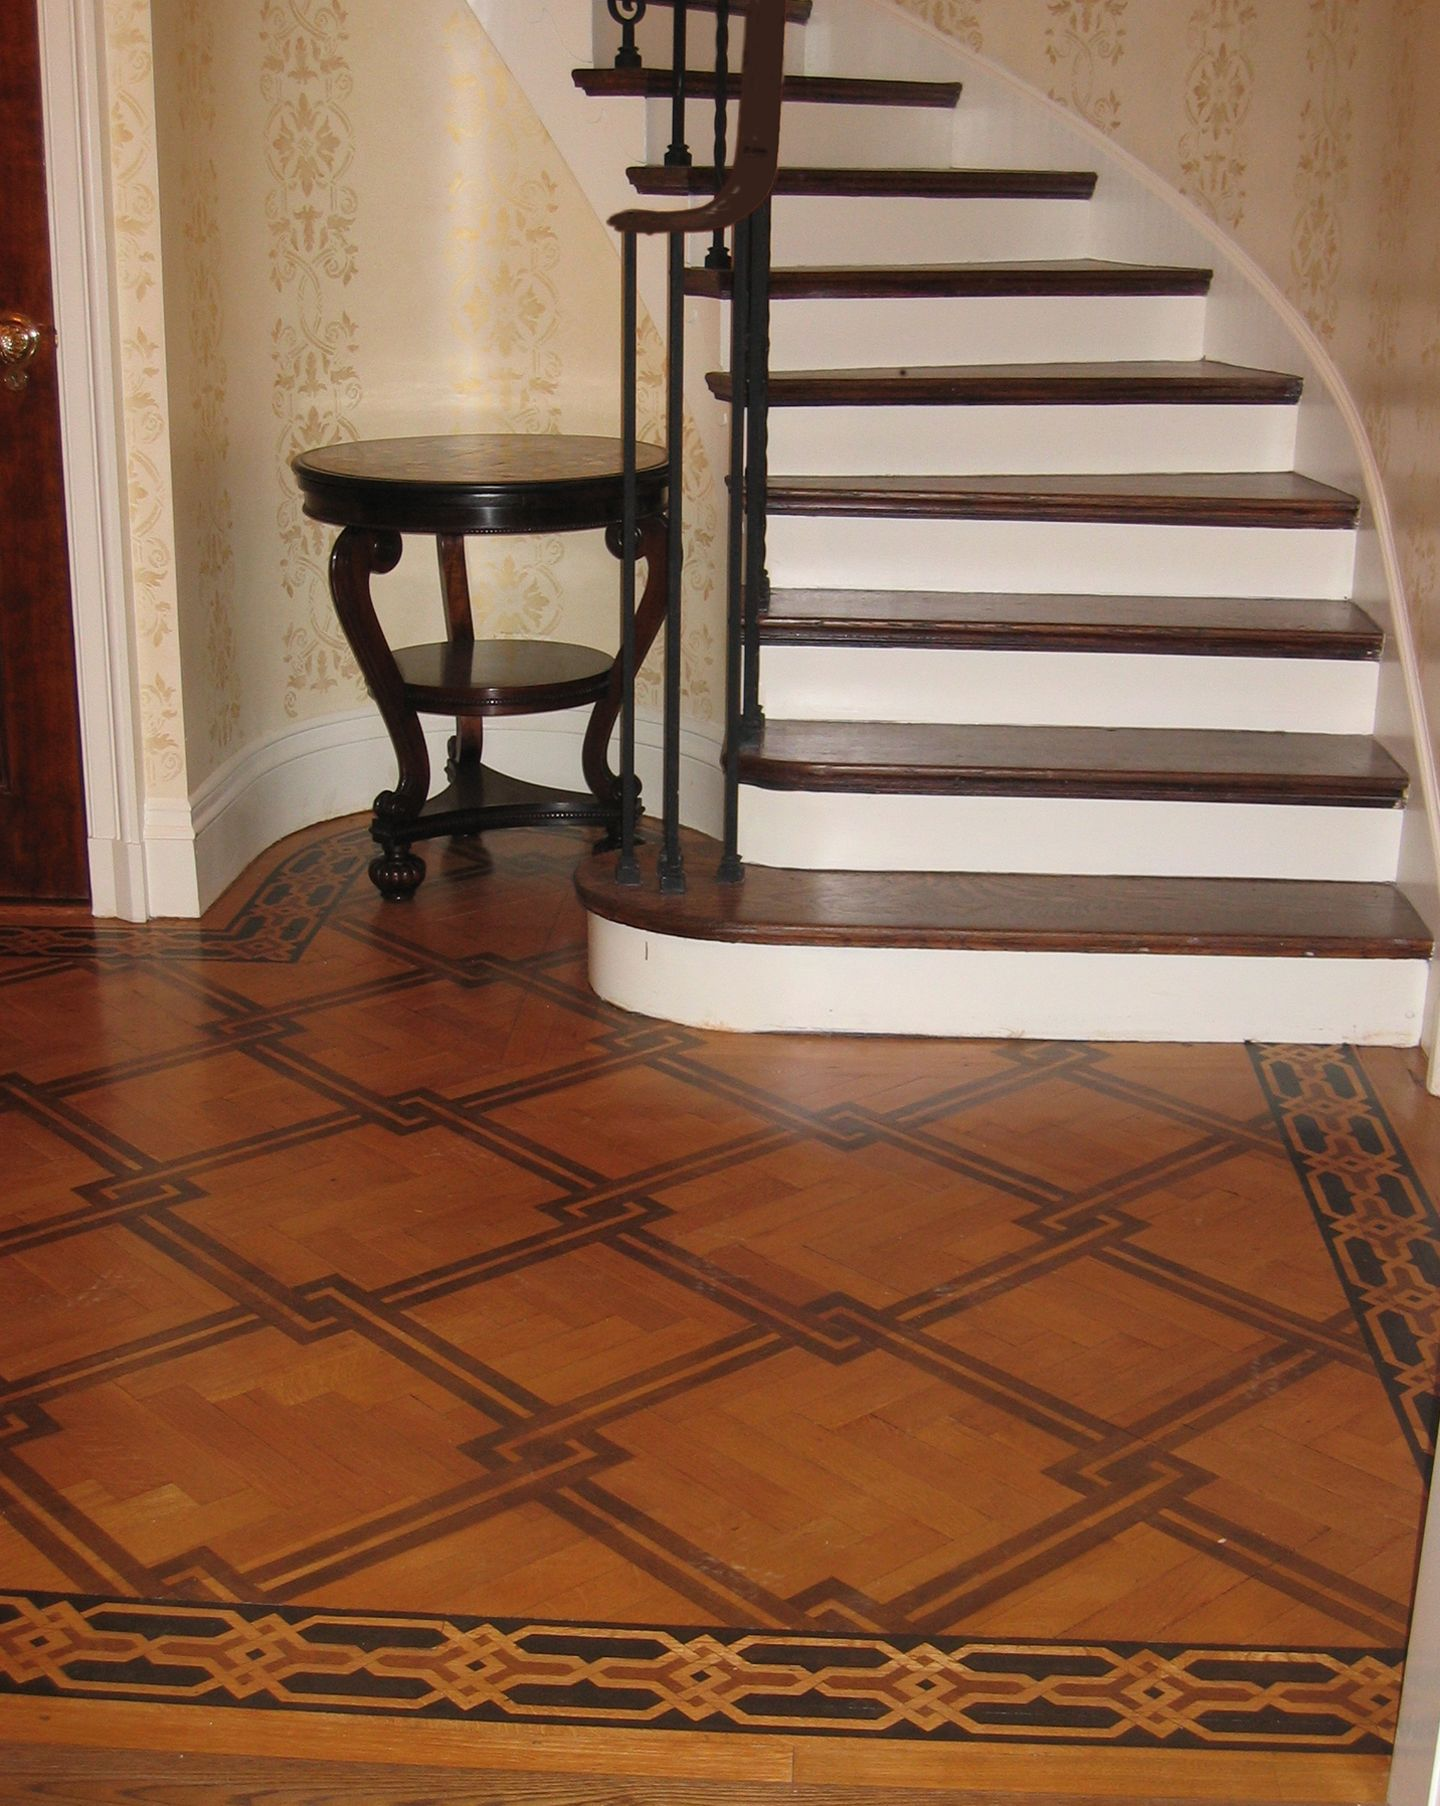 Faux Inlaid Wood Floor